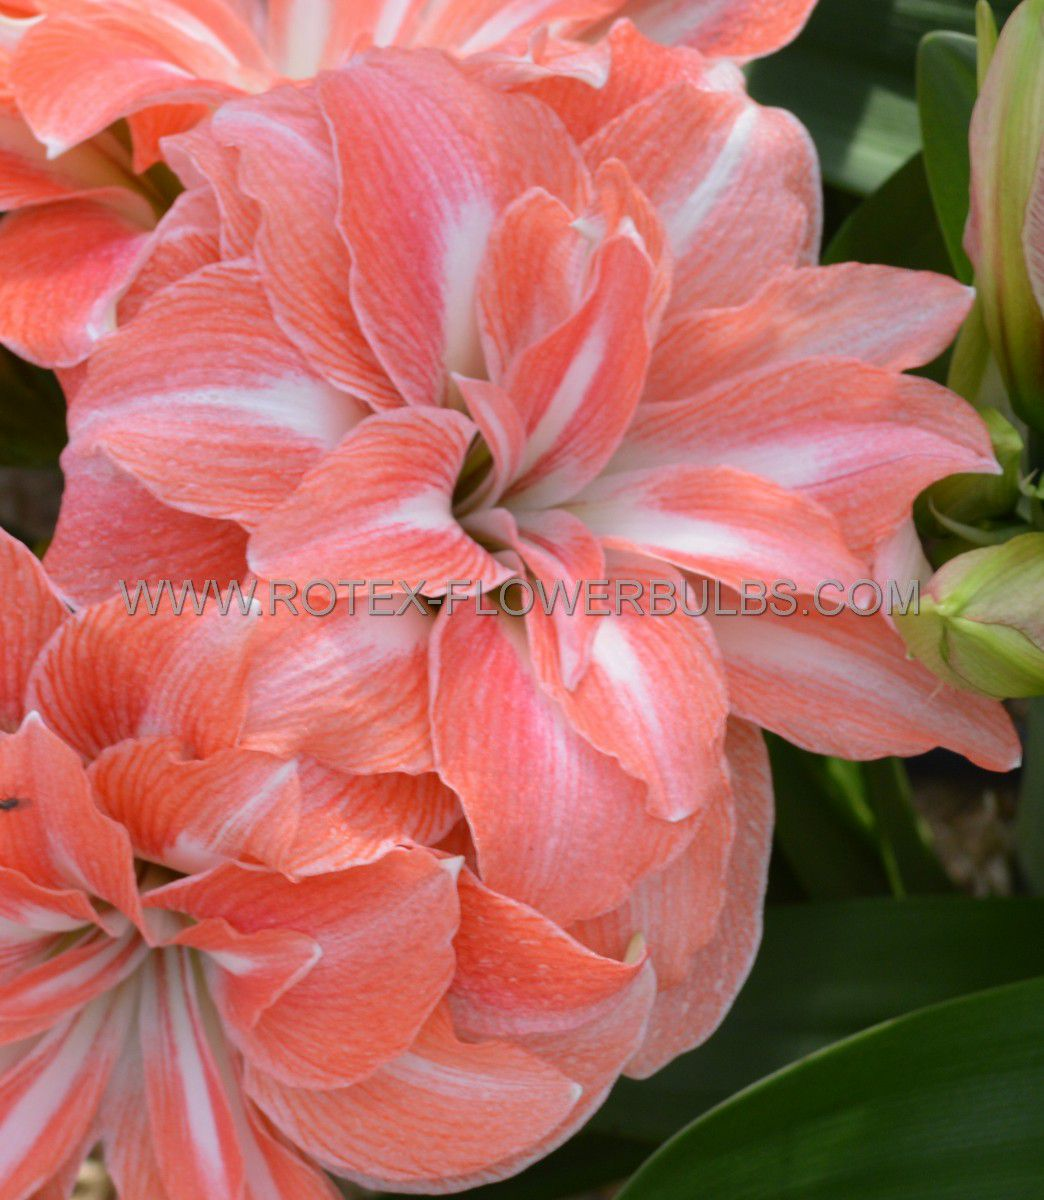 hippeastrum amaryllis double flowering lady jane 3436 cm 30 pcarton